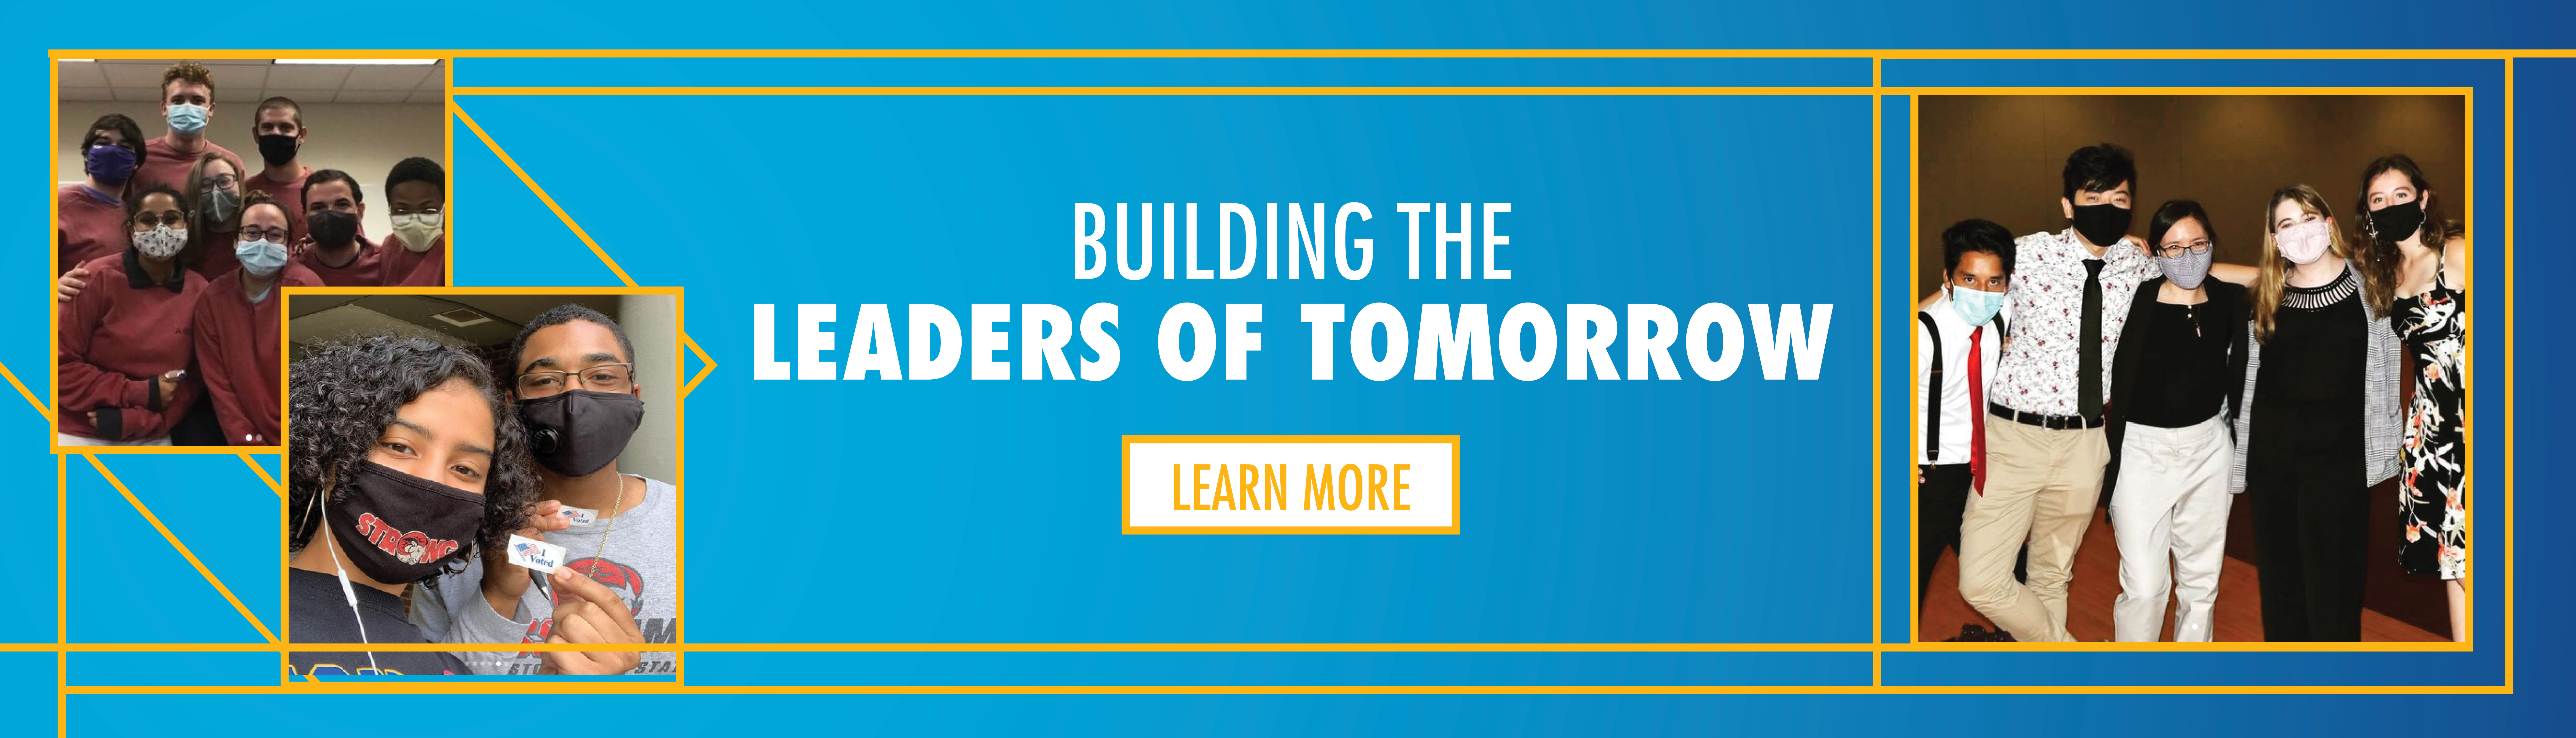 building the leaders of tomorrow. click to learn more.